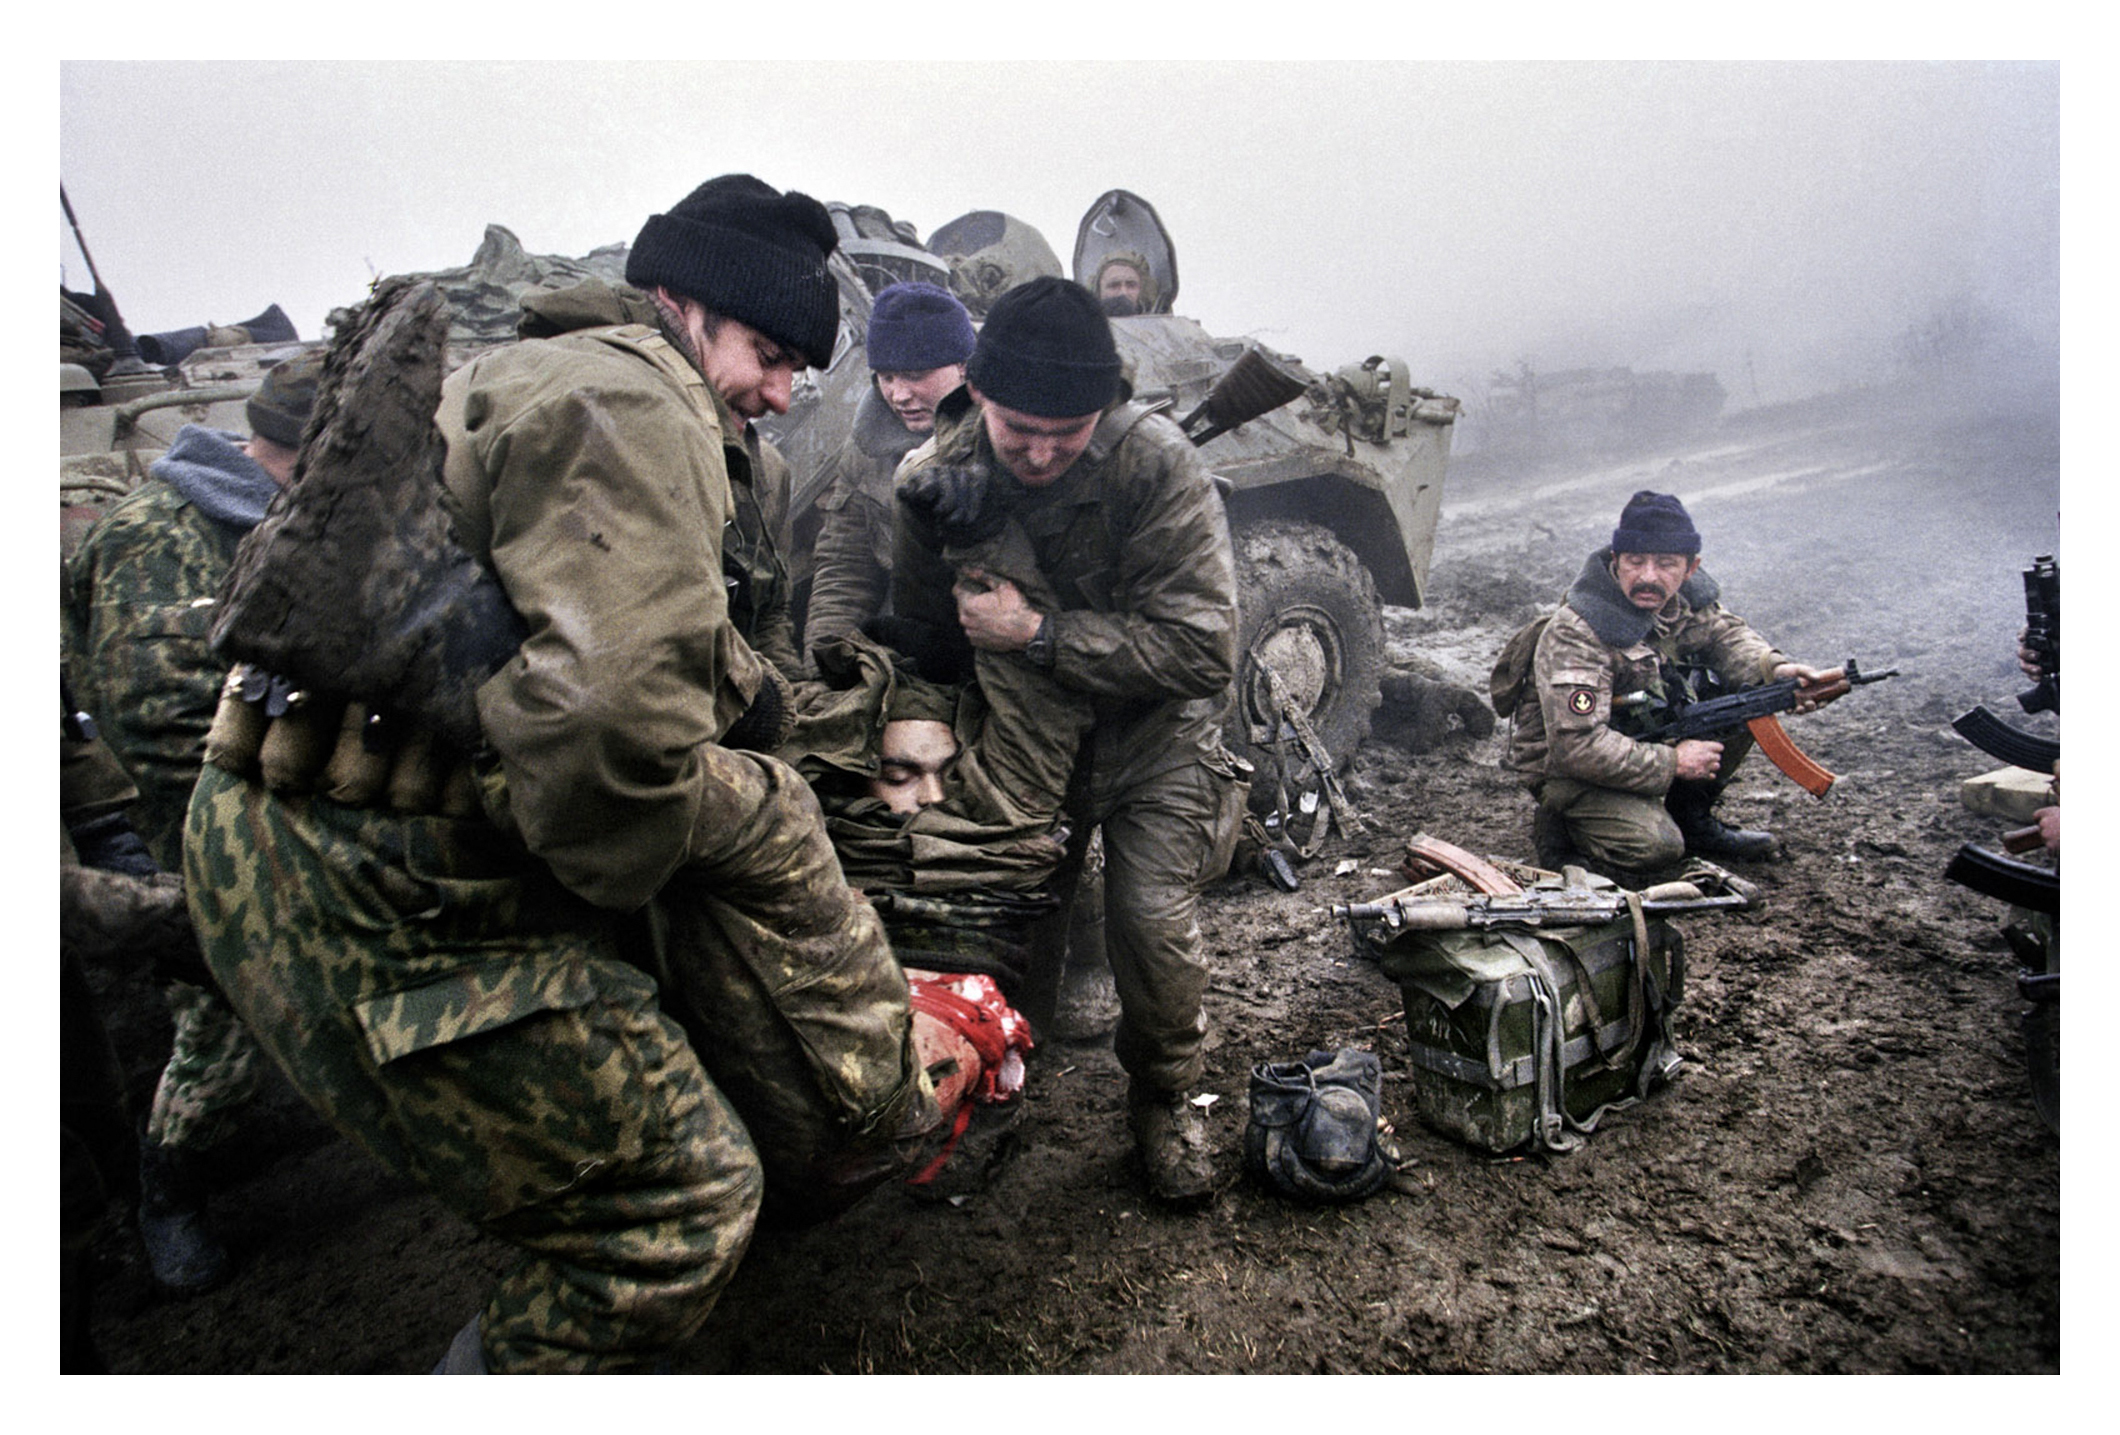 TSENTOROI, CHECHNYA-DECEMBER 1999Soldiers wounded